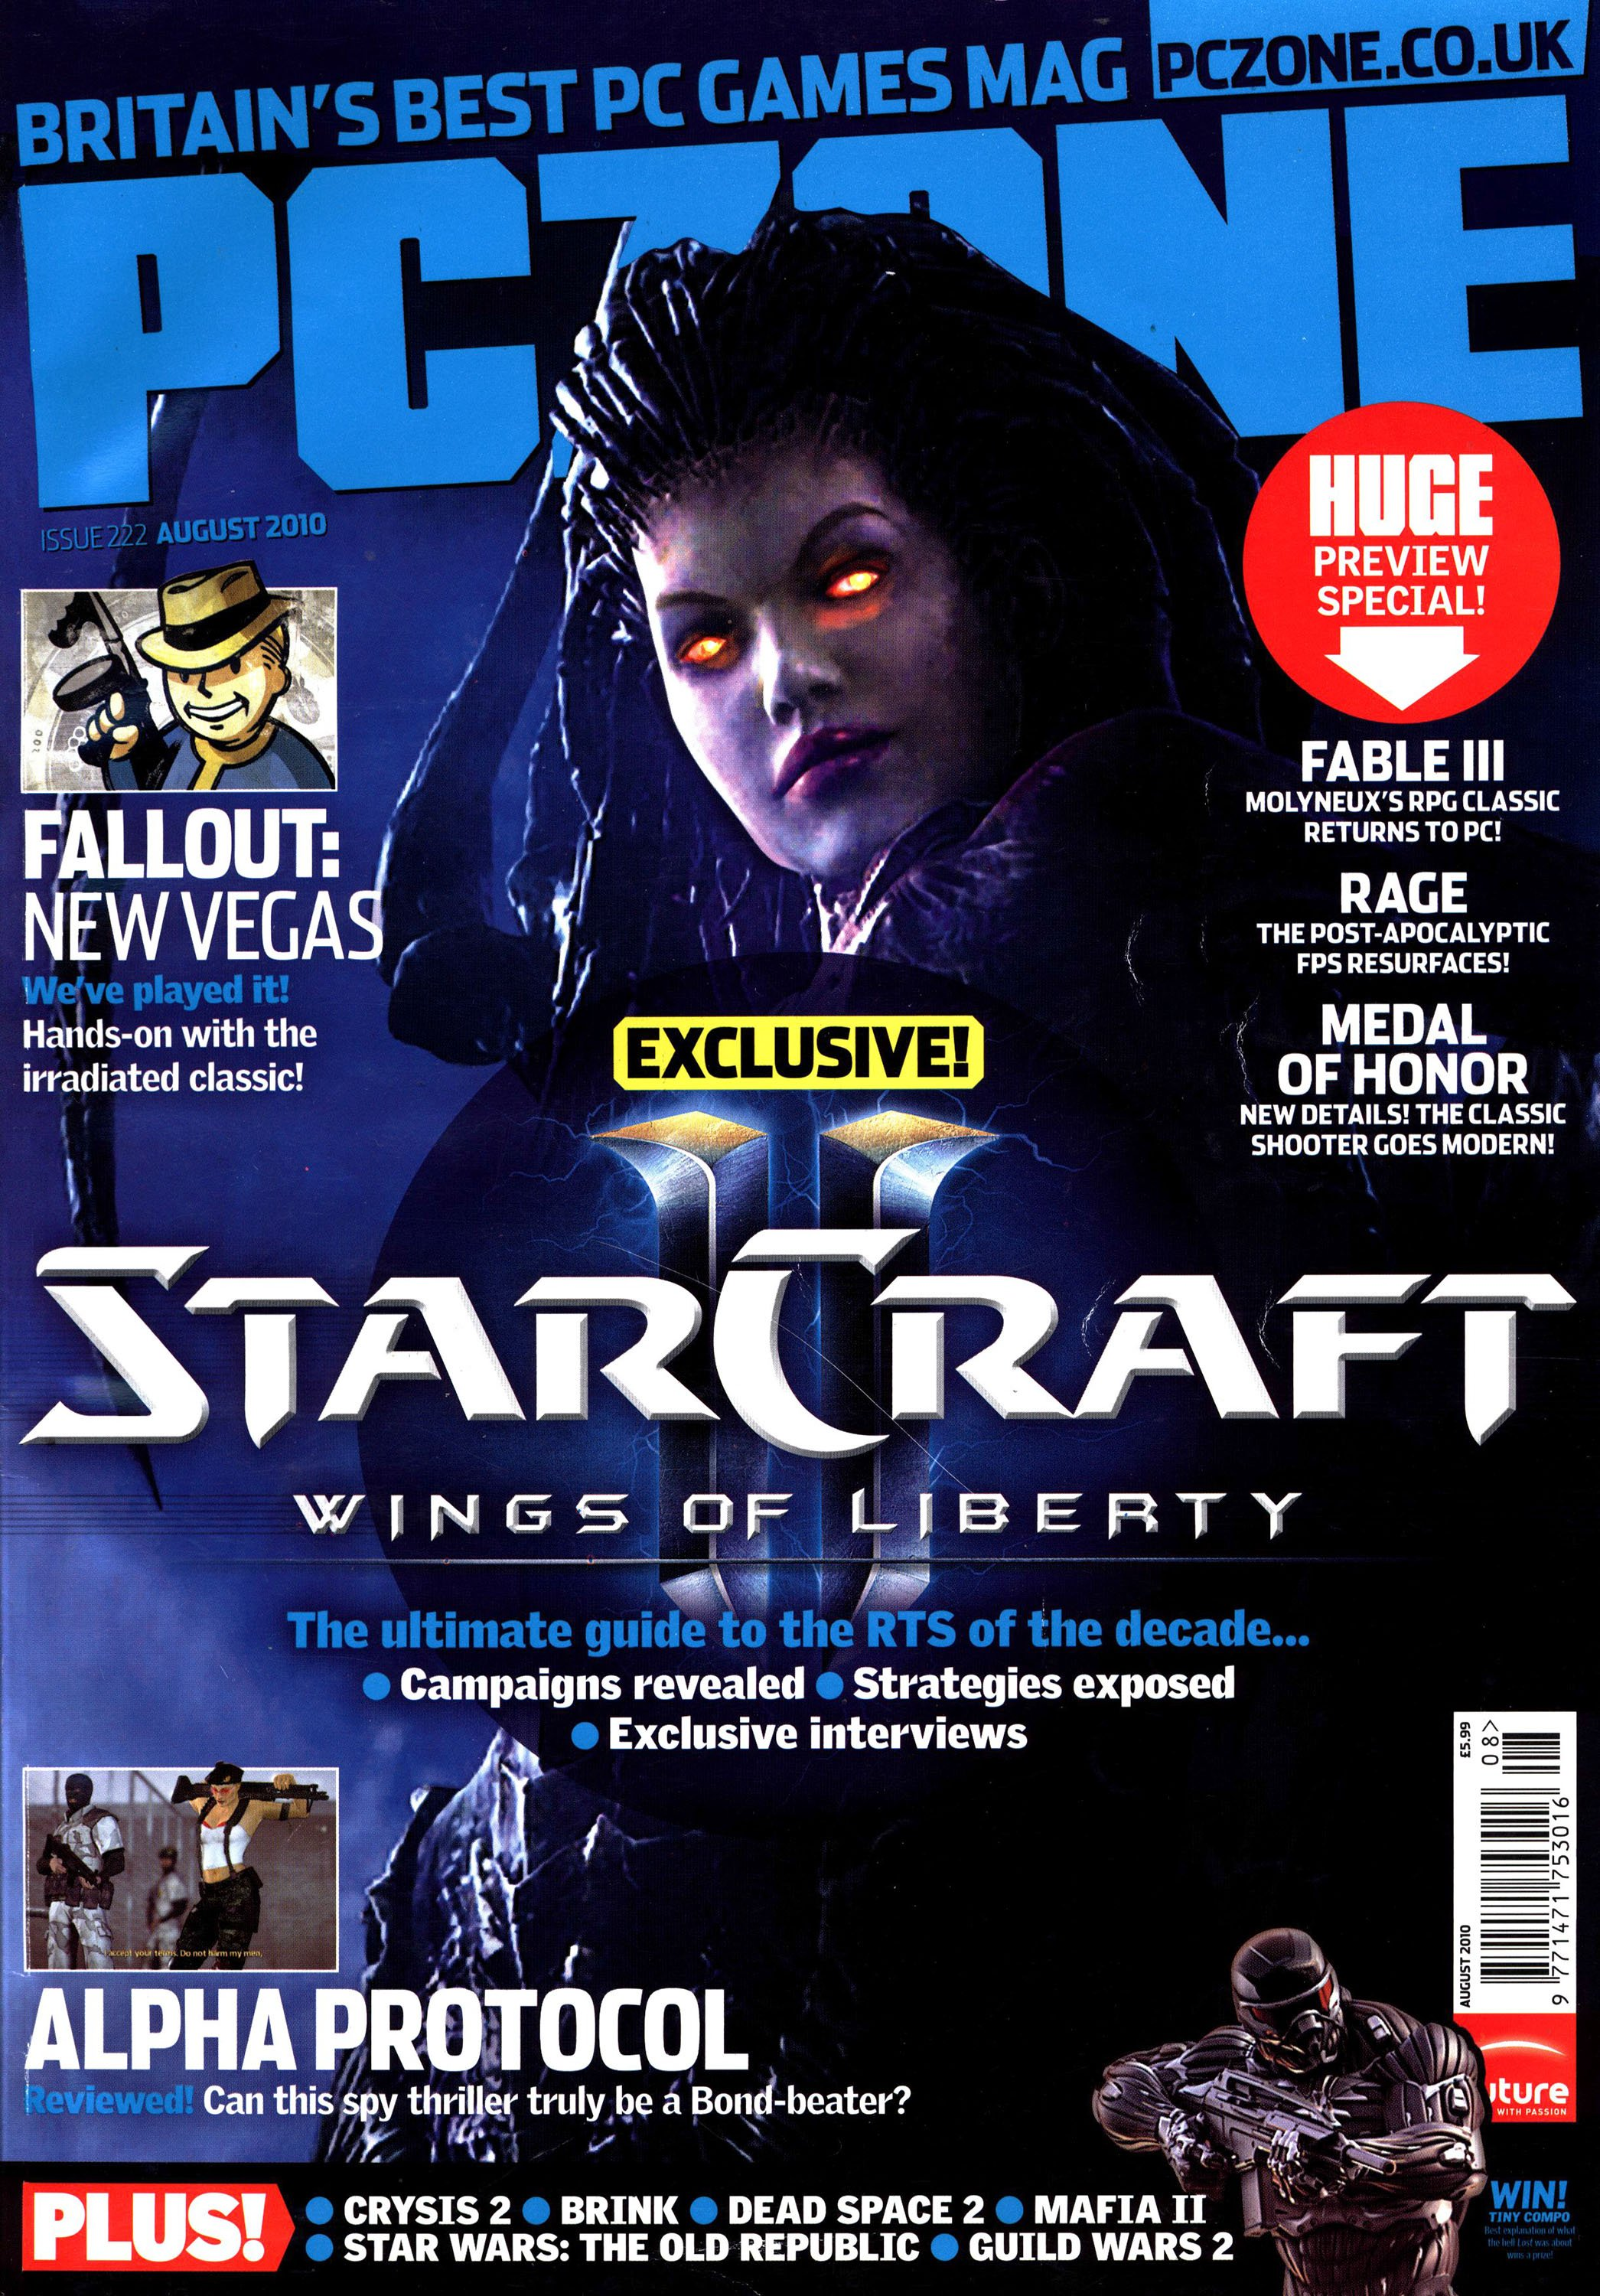 PC Zone Issue 222 (August 2010)